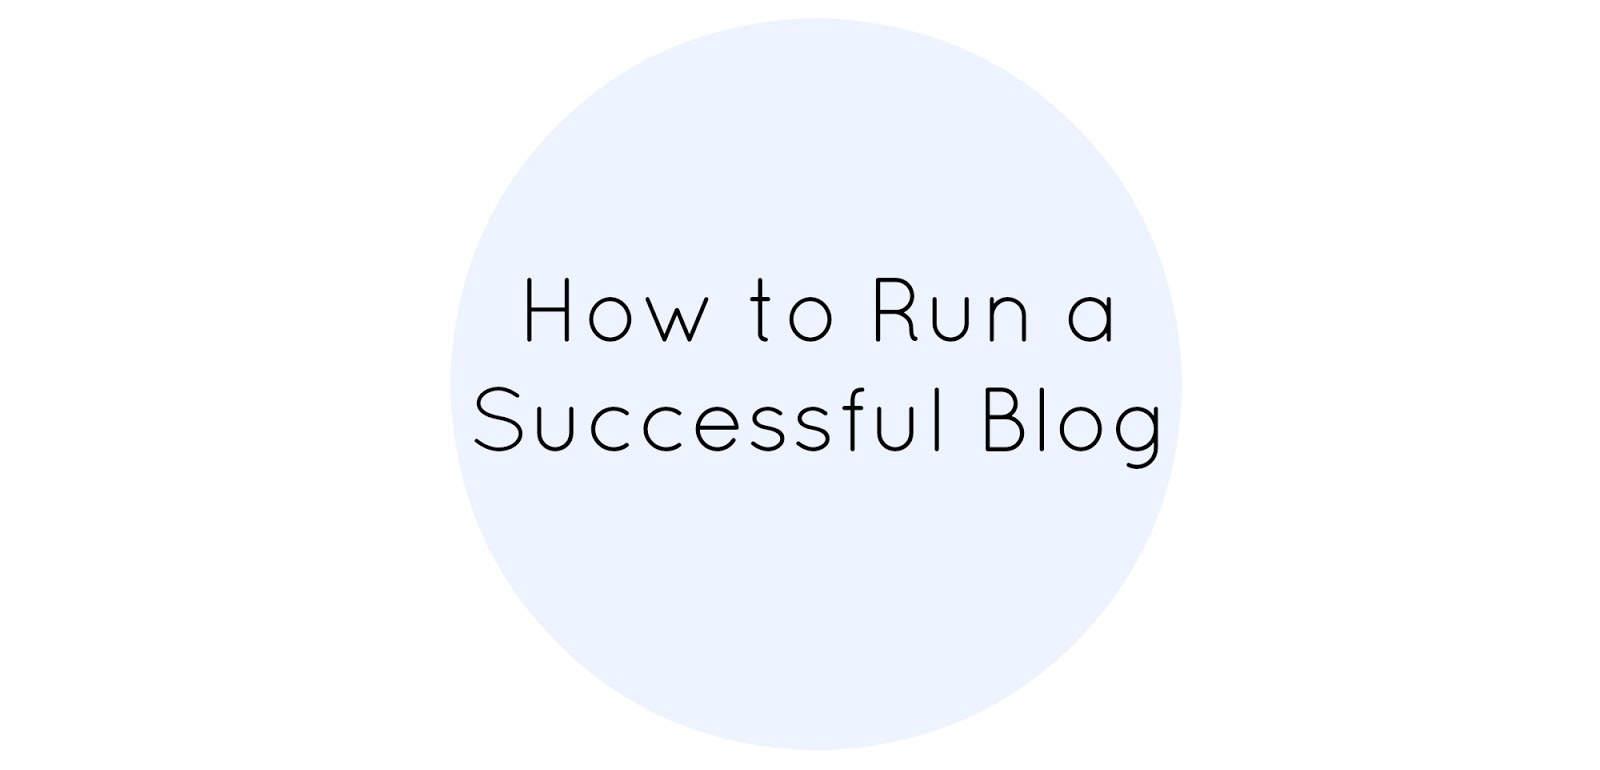 How to Run a Successful Blog, shemightbeloved